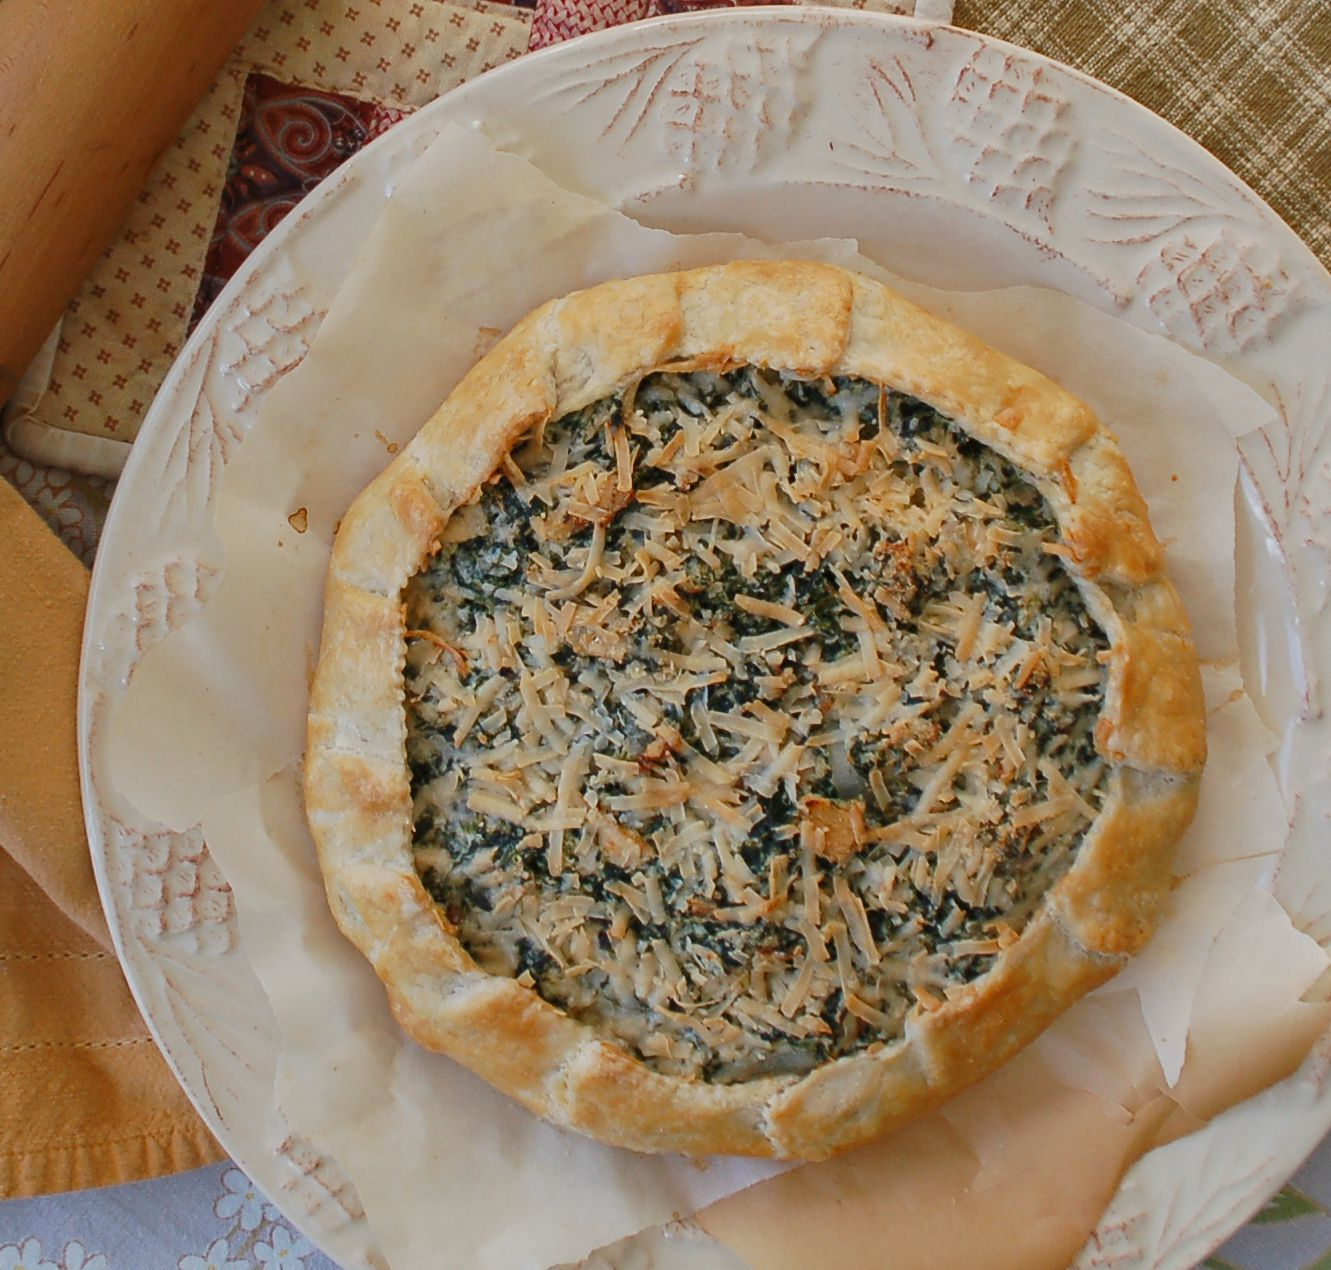 The Spice Garden: Rustic Turkey and Spinach Tart